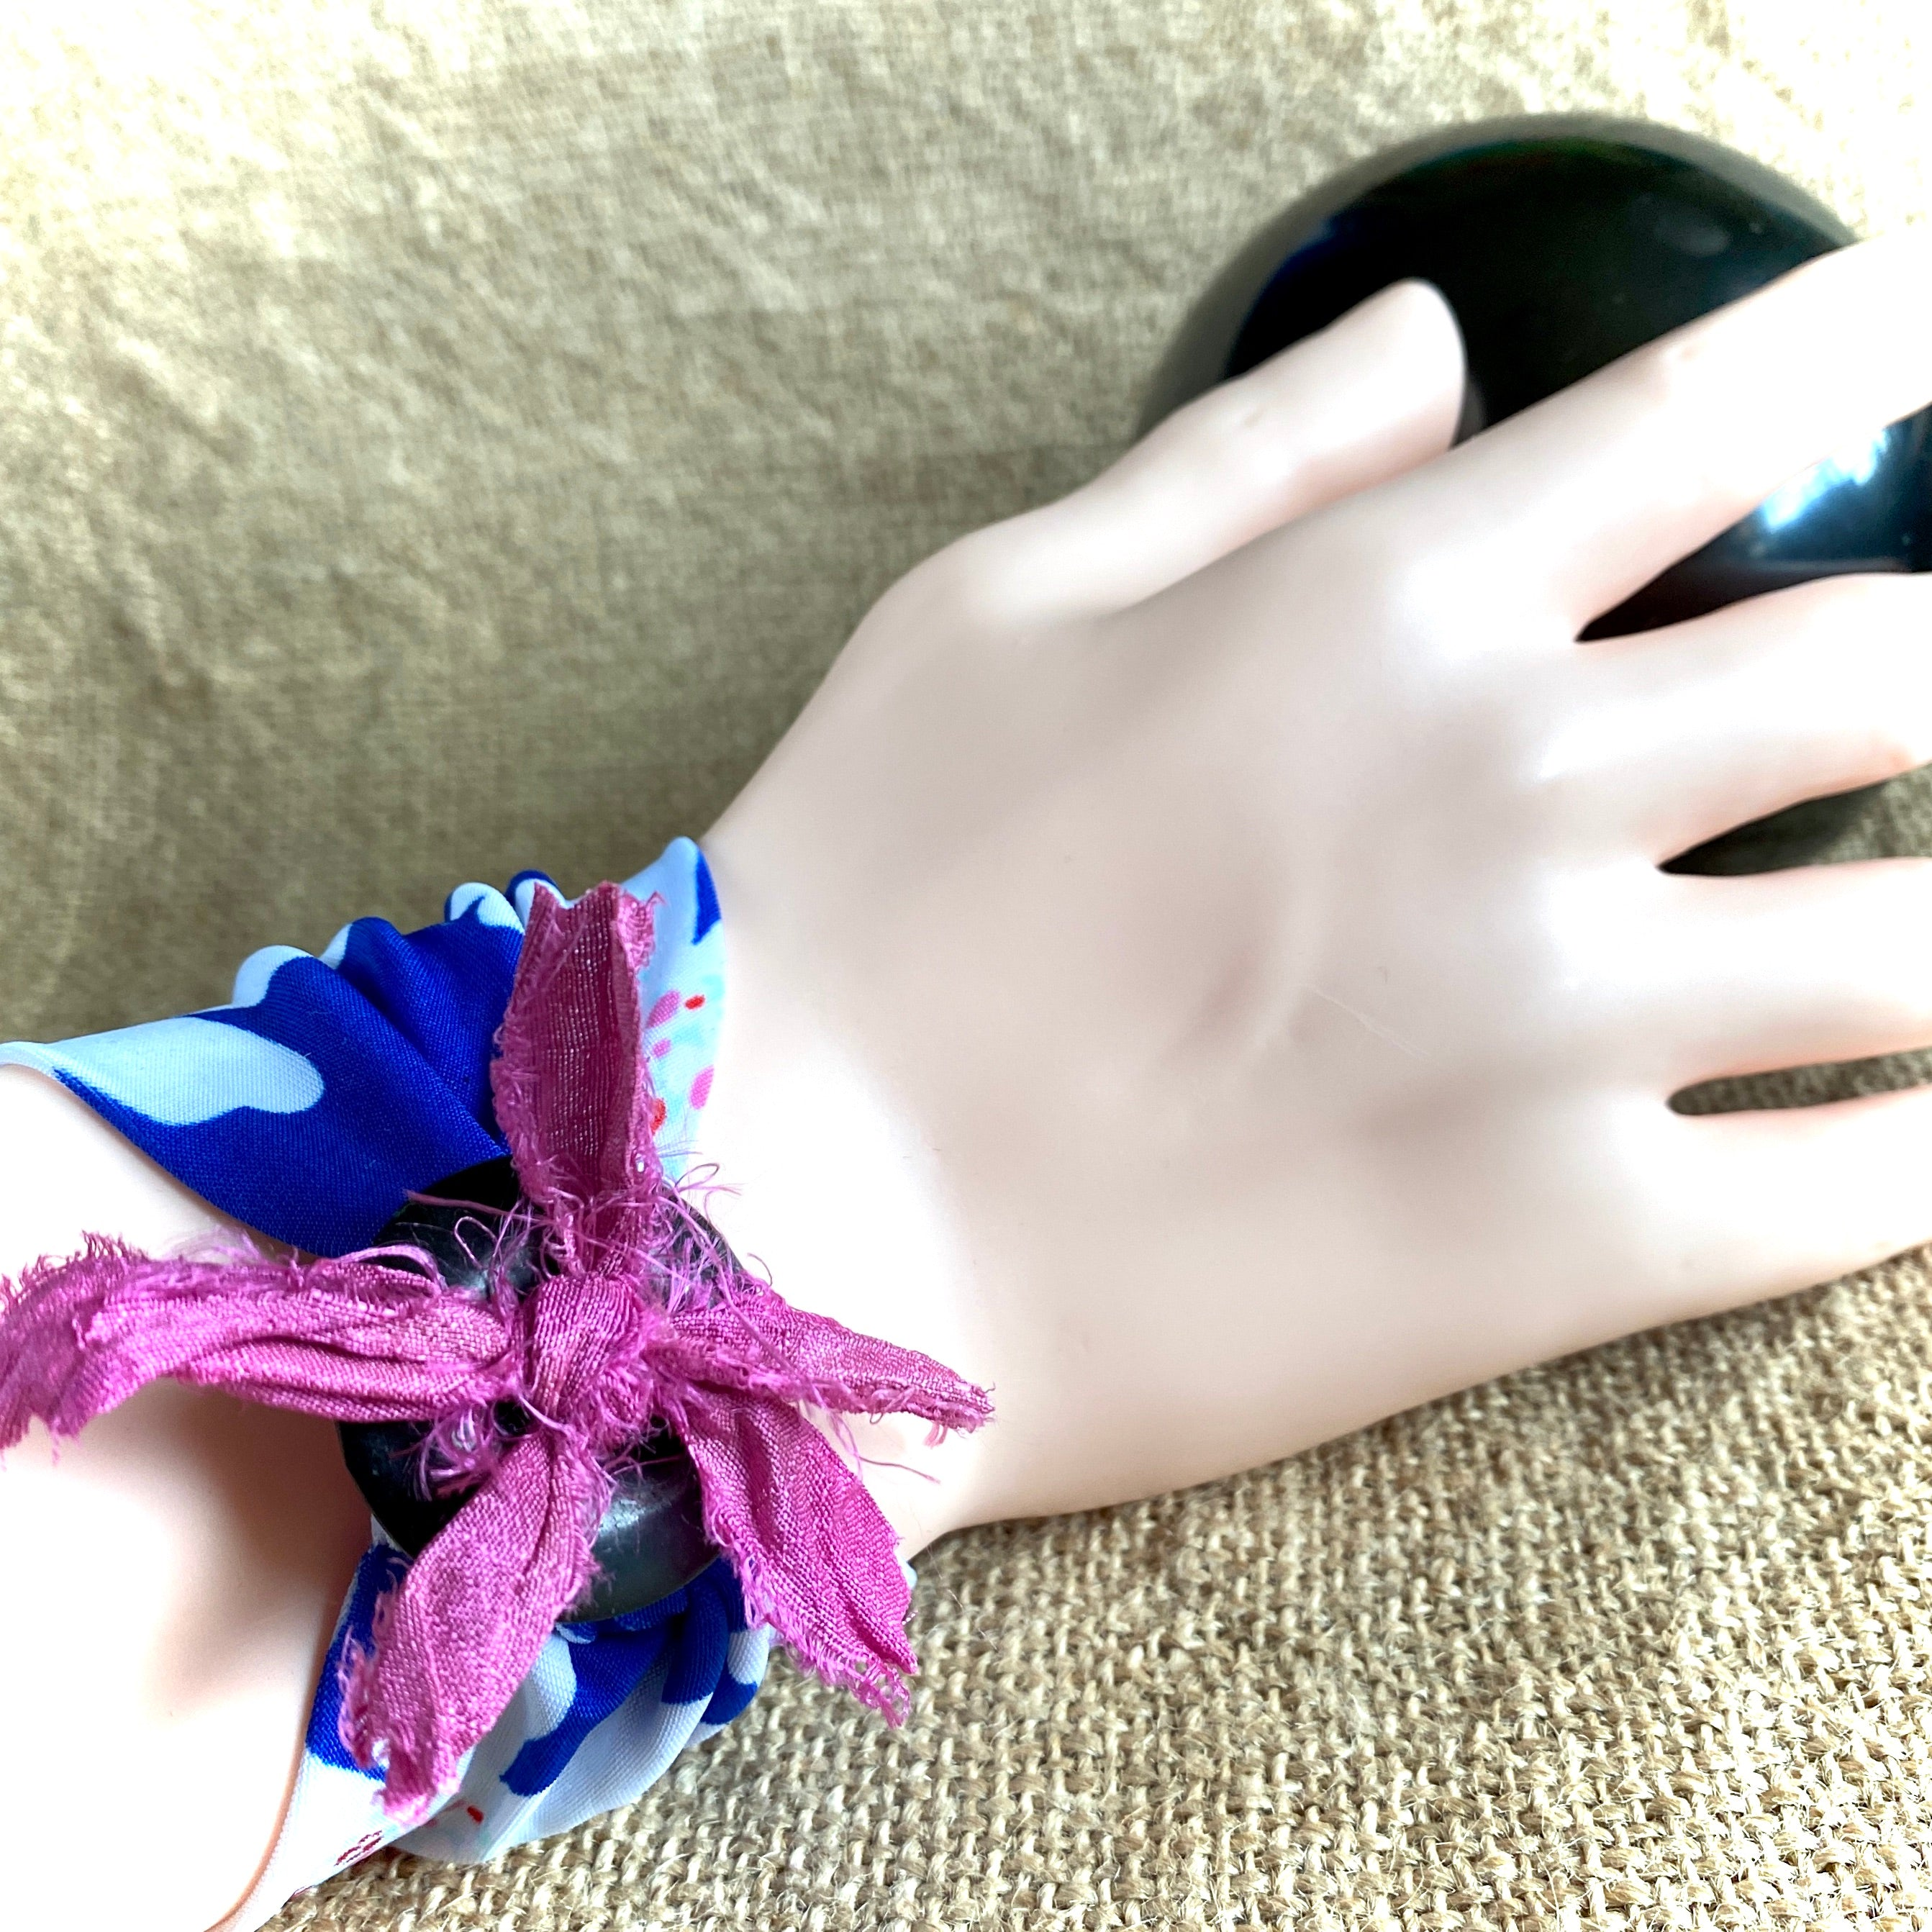 Blue & White Floral Wrist Band, Shungite, Pink Fabric Ties, Tattoo Cover